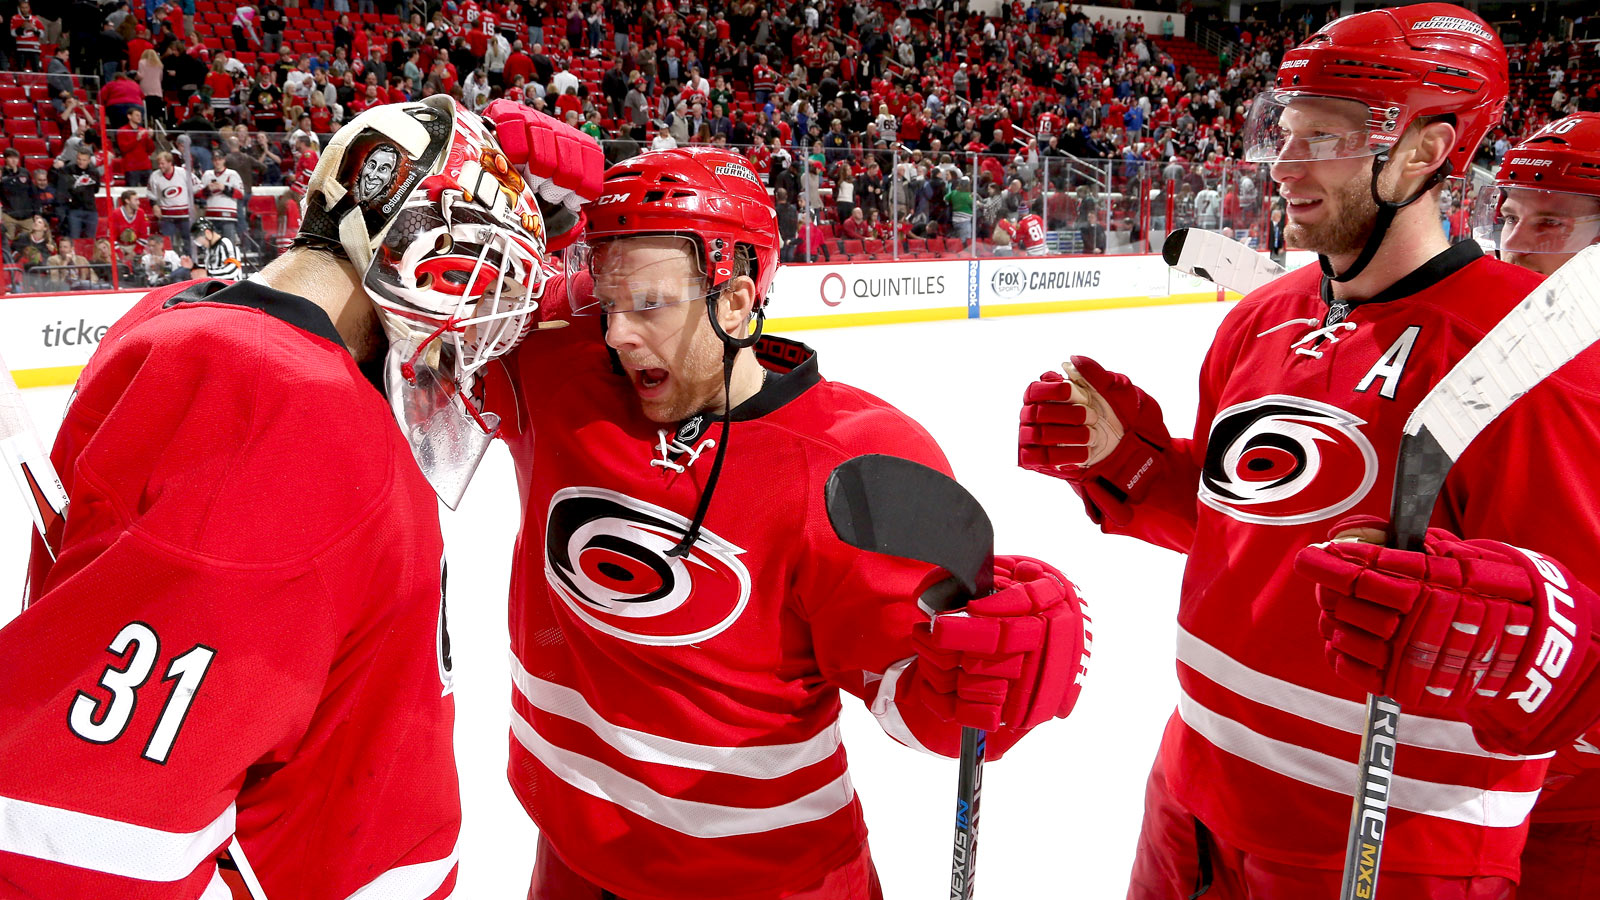 Are the Hurricanes strong enough to make the playoffs?